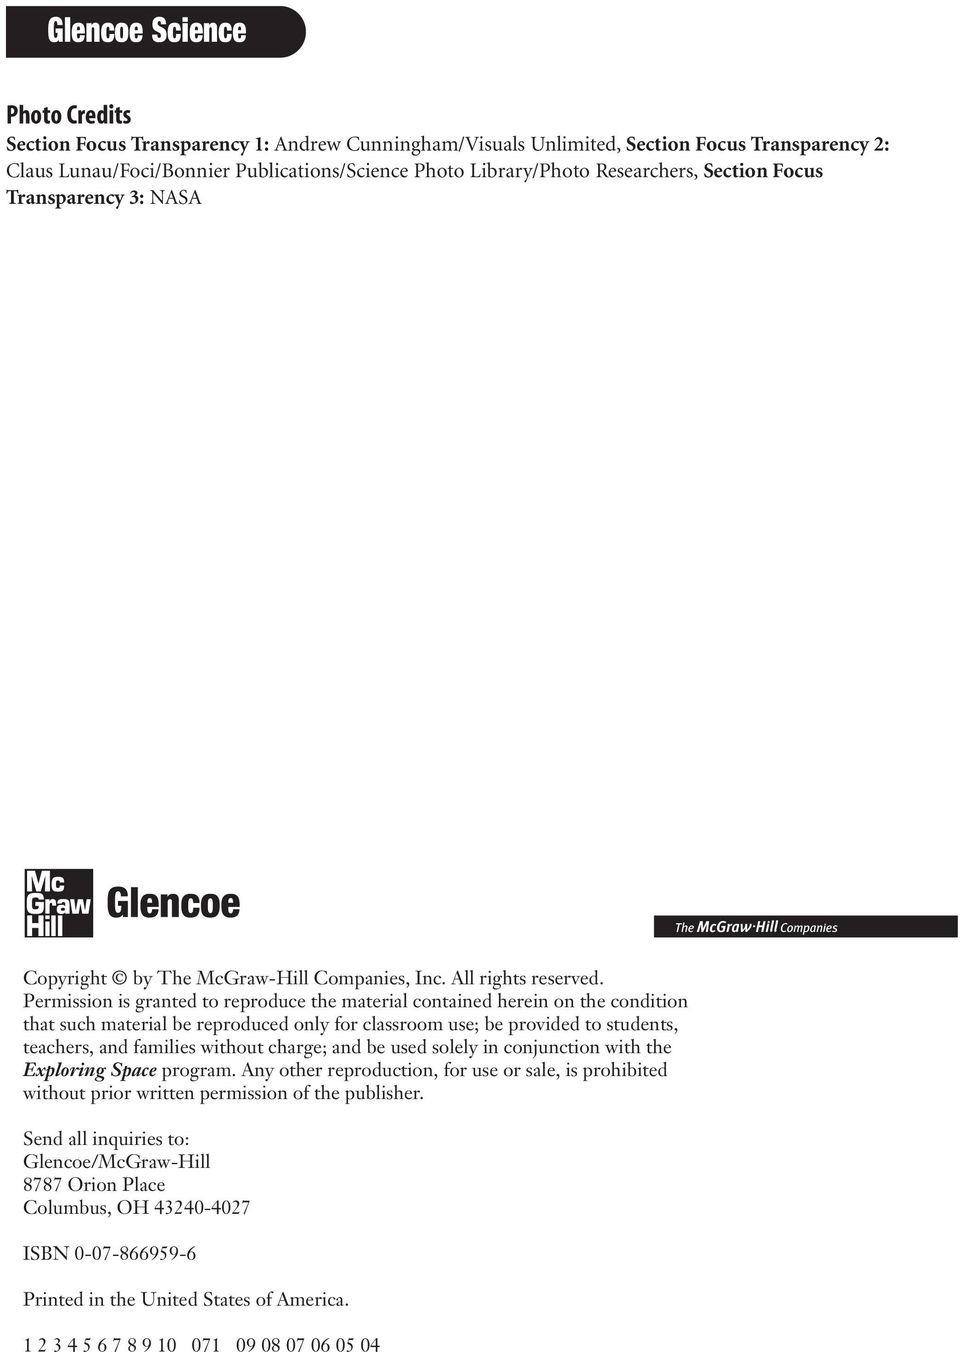 glencoe science worksheet answers Termolak – Glencoe Mcgraw-hill Worksheet Answers